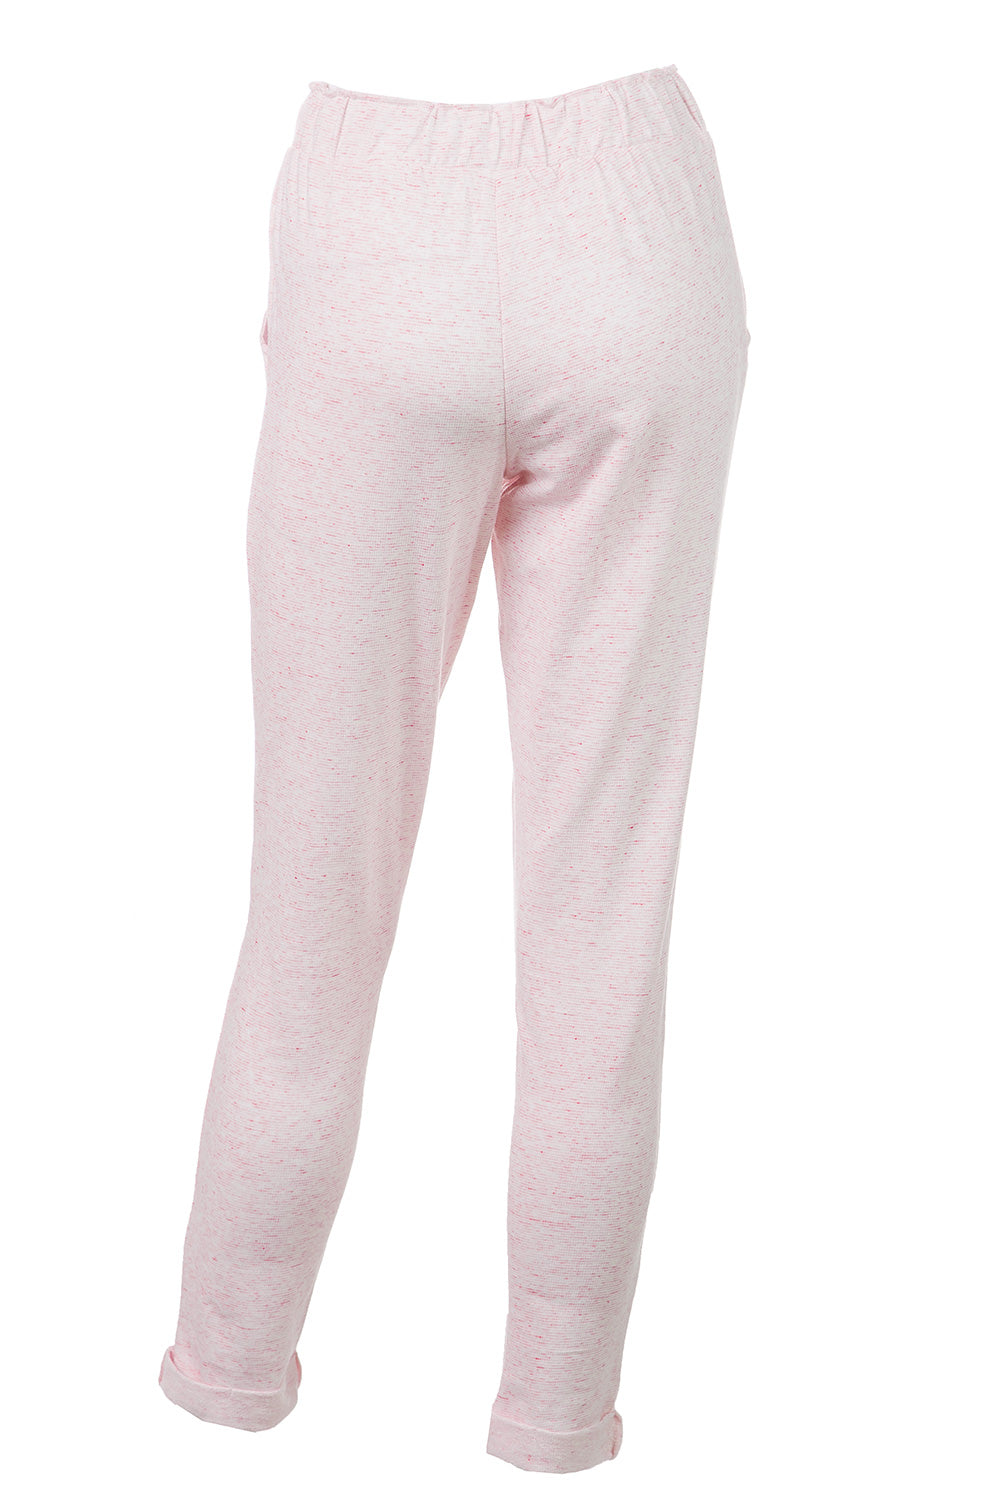 Type 1 Candy Dance Lounge Pants